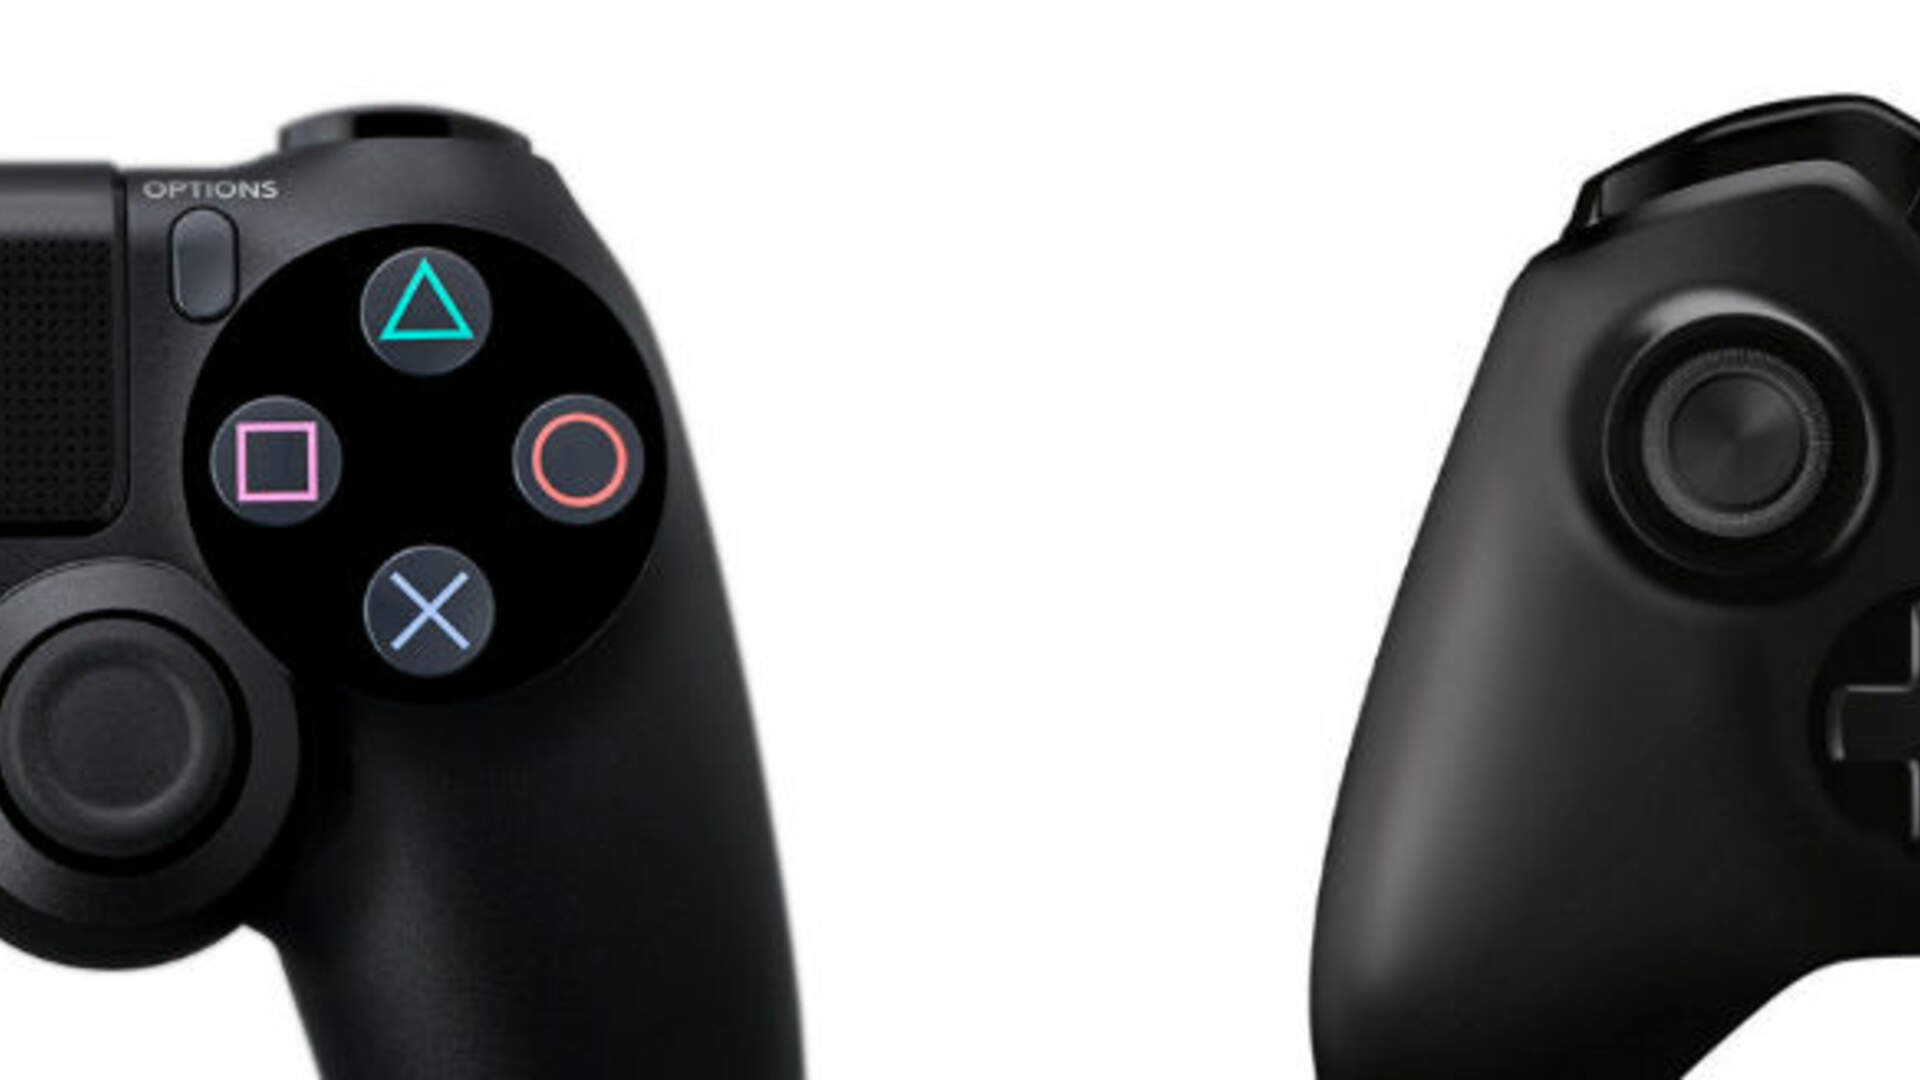 PlayStation 4 is Sitting Out On Cross Platform Play, and Players are Confused